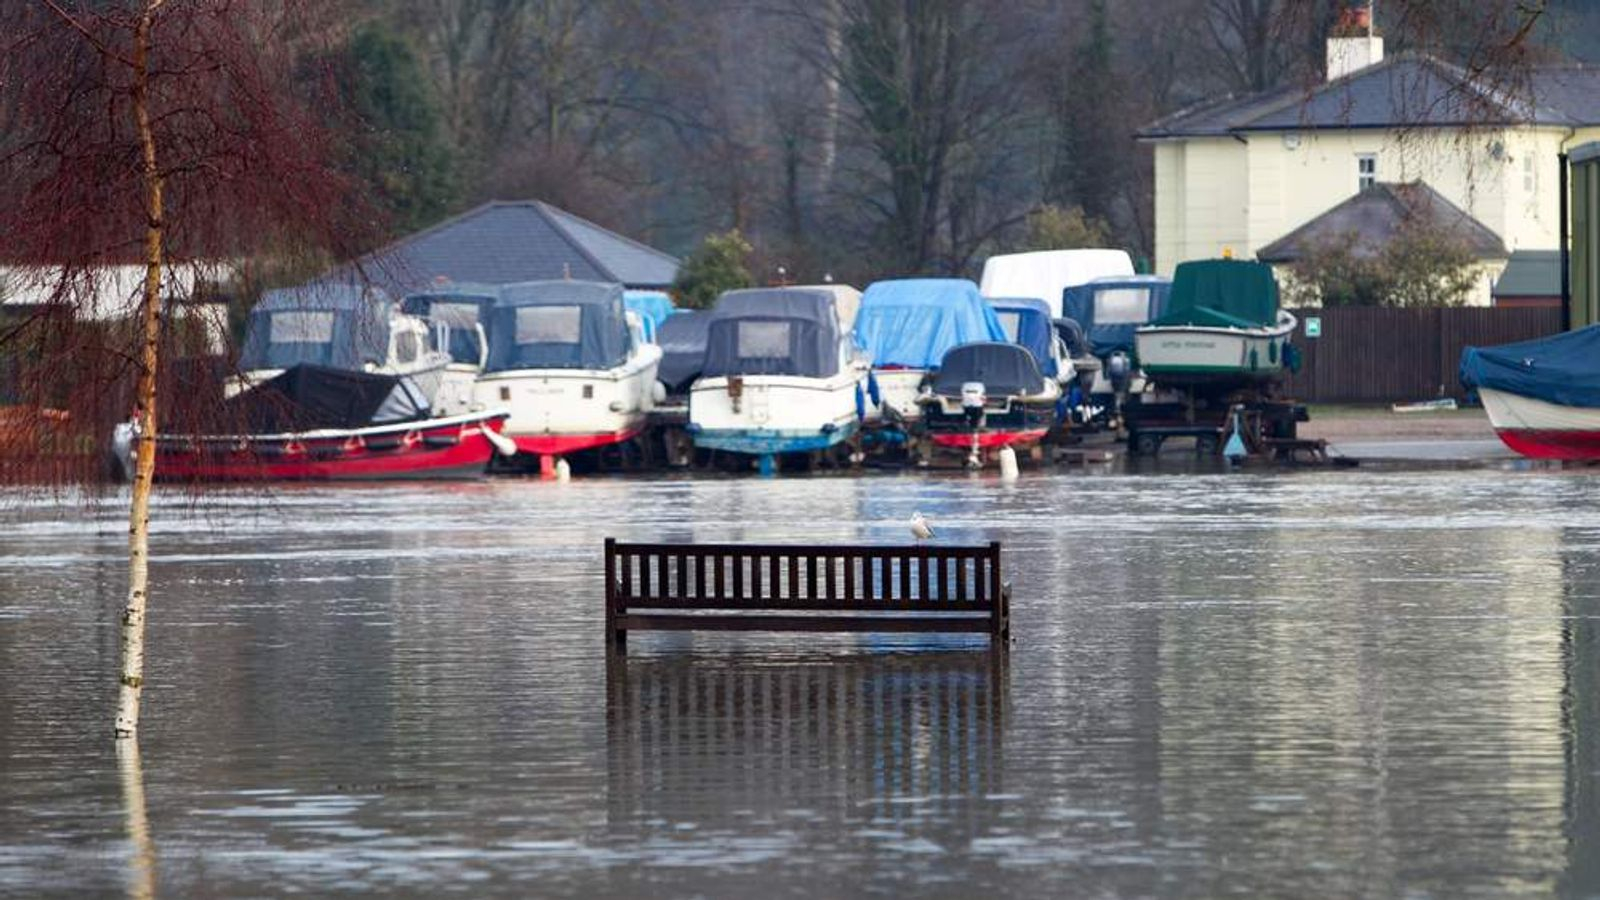 A man died after falling into the River Thames, which is flooded in Henley